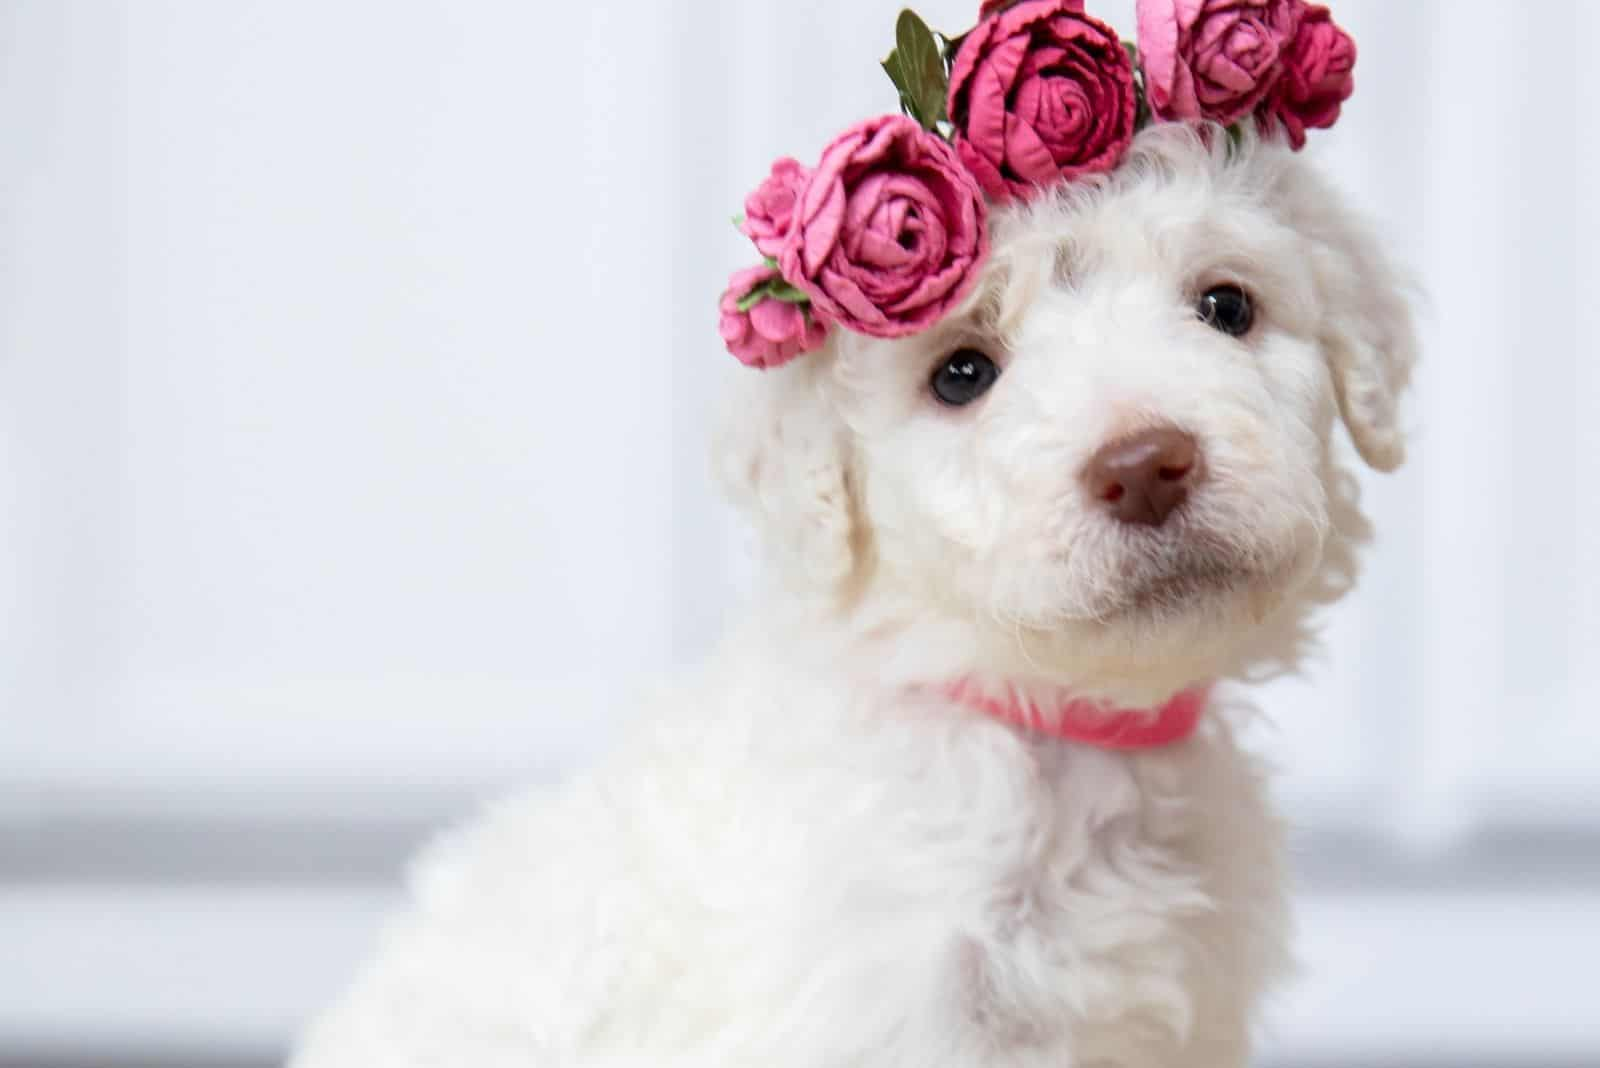 cute goldendoodle puppy with rose crown in the head